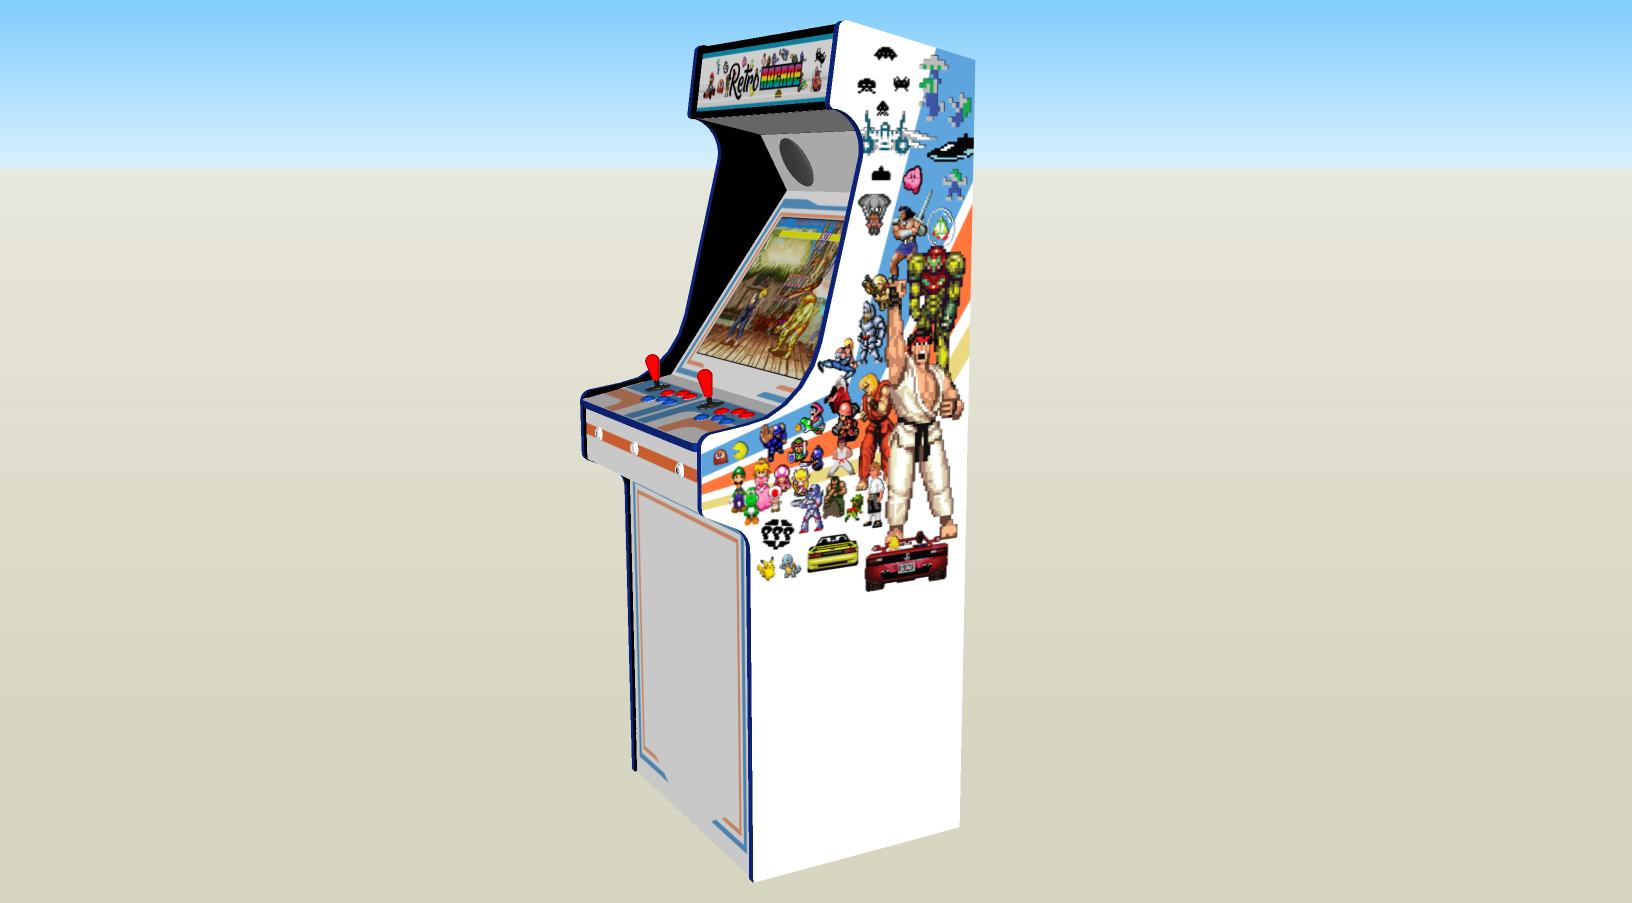 Retro Mash Arcade Machine with 1300 games, 100w subwoofer - middle